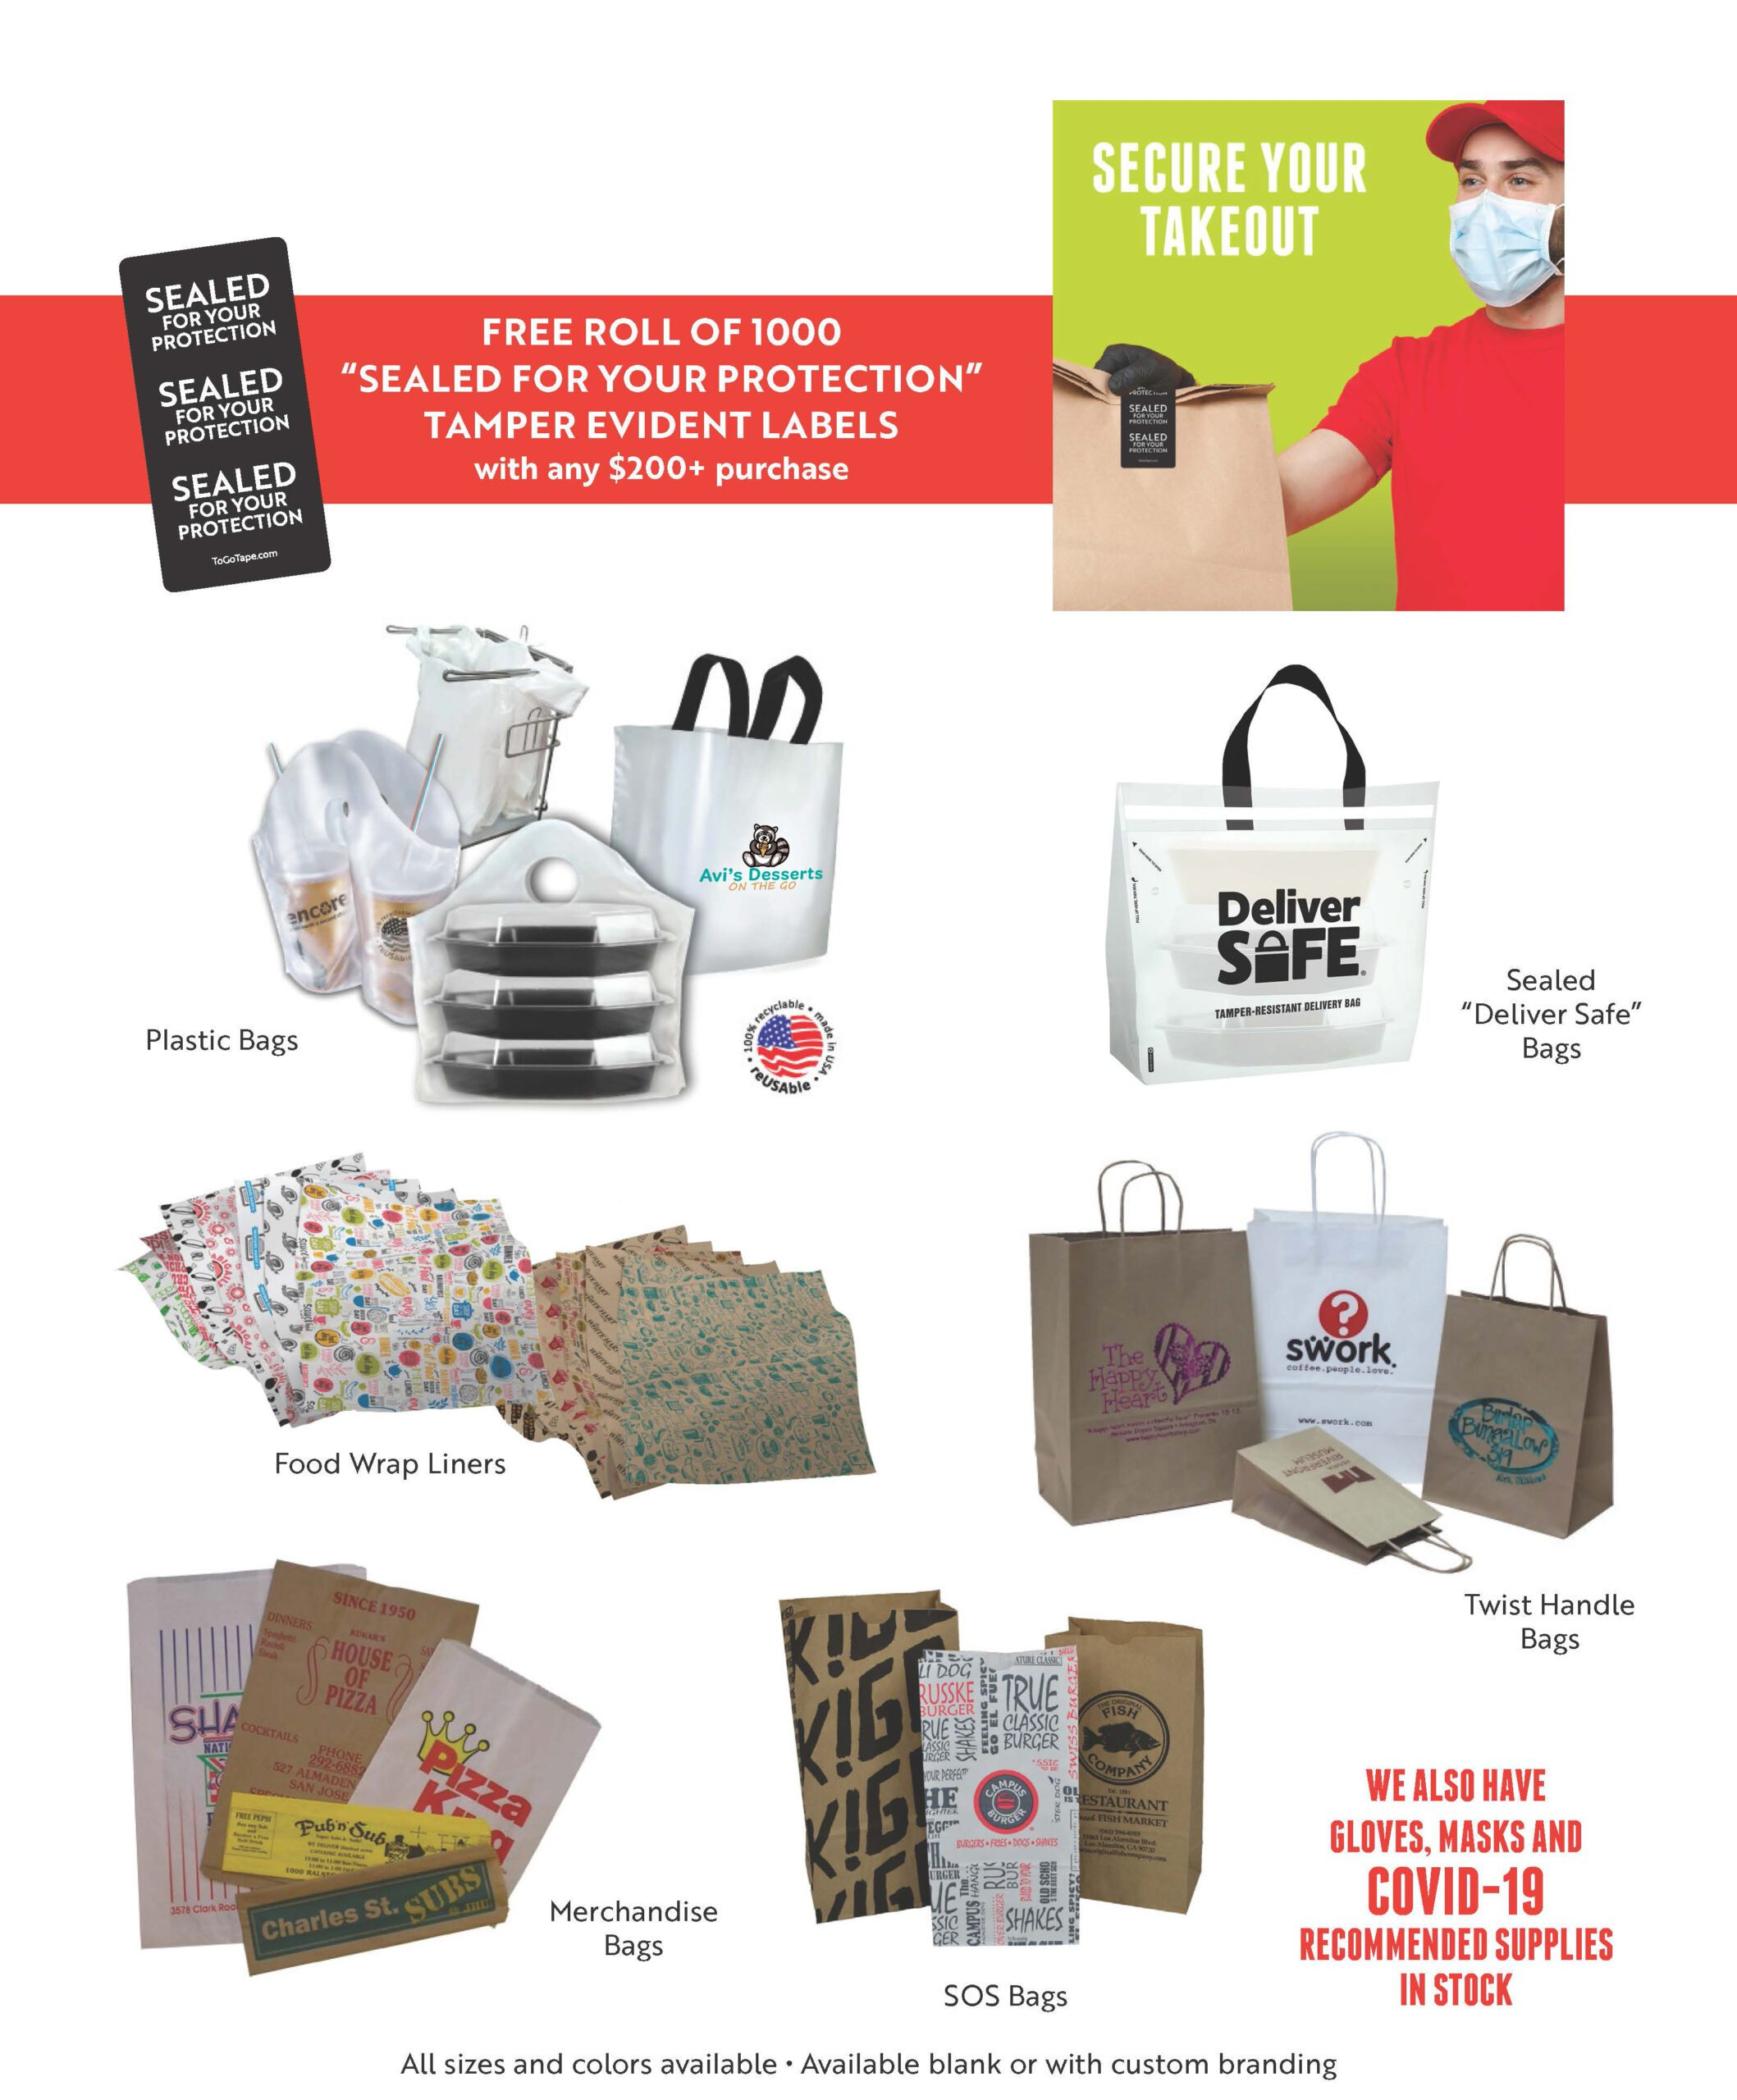 Debs Packaging Flyer showing custom printed take out bags for restaurants